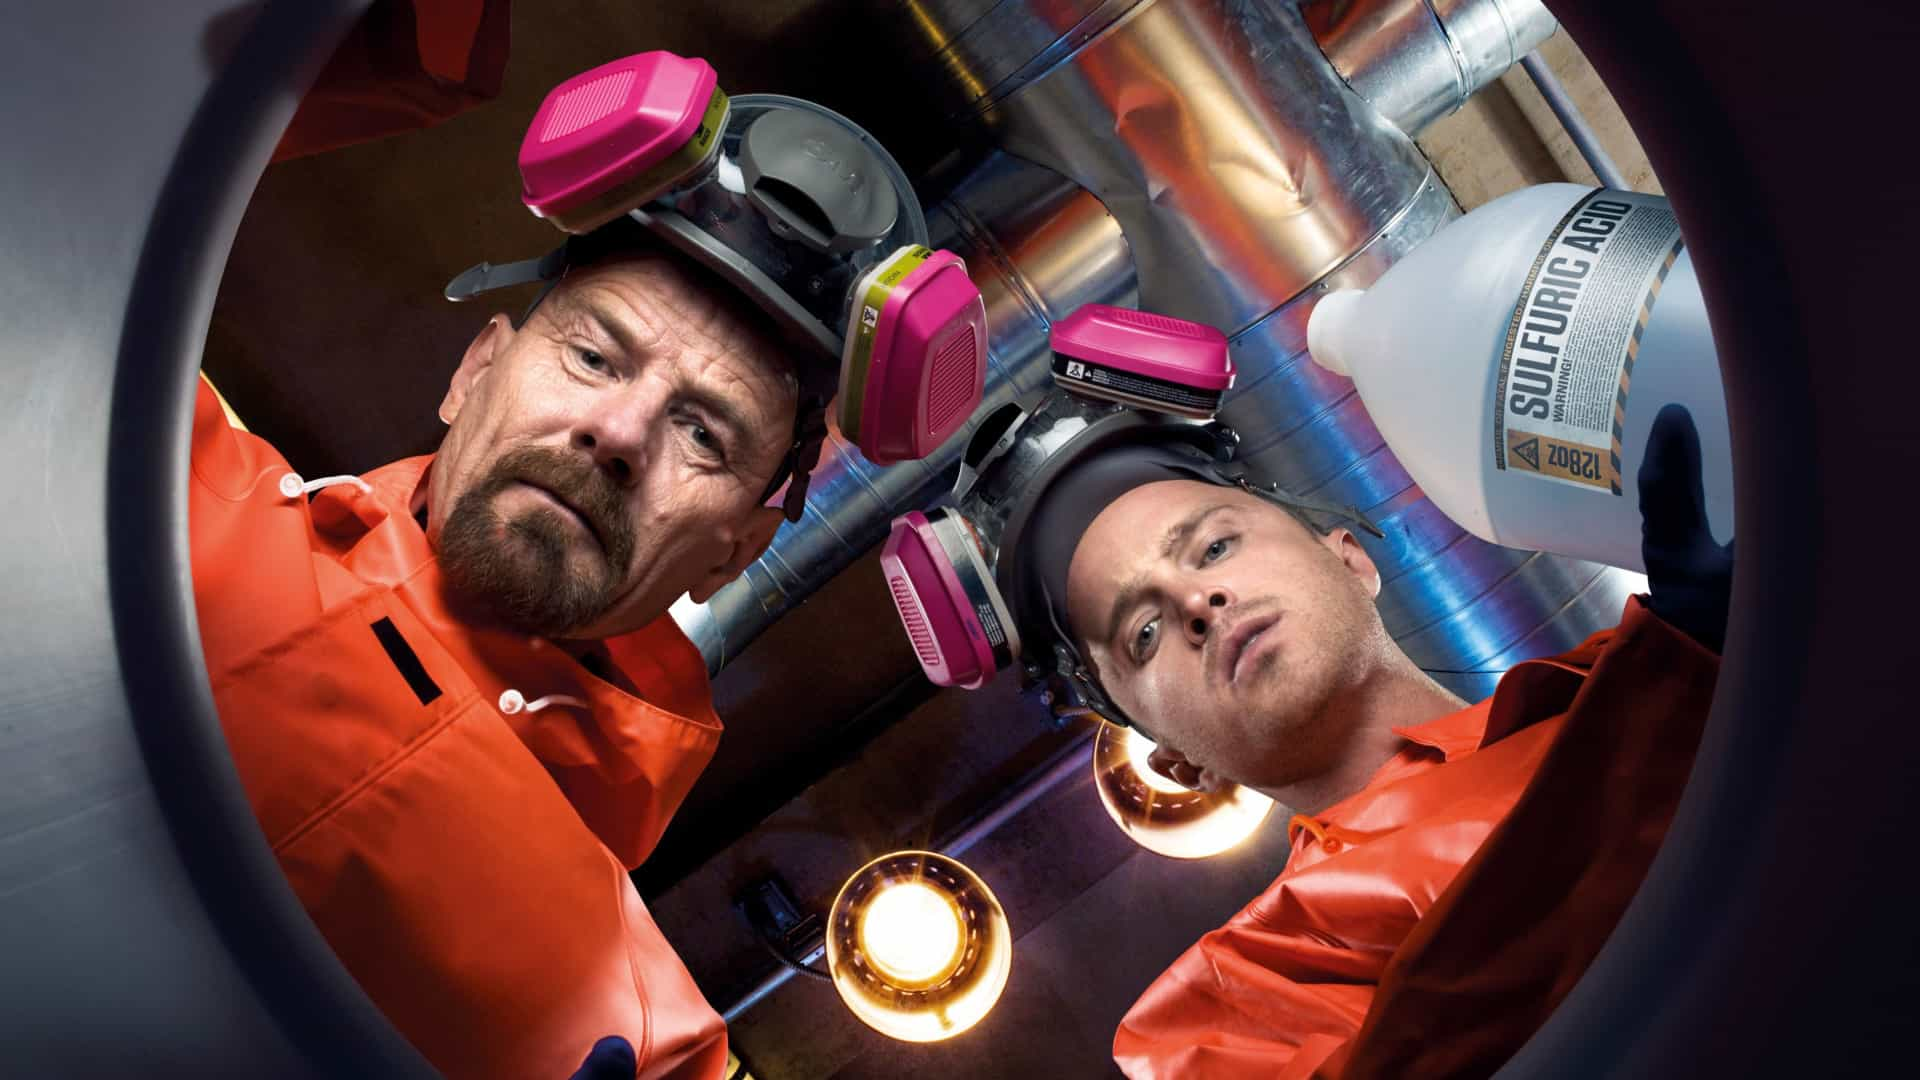 'Breaking Bad' e outras séries populares que renderam filmes